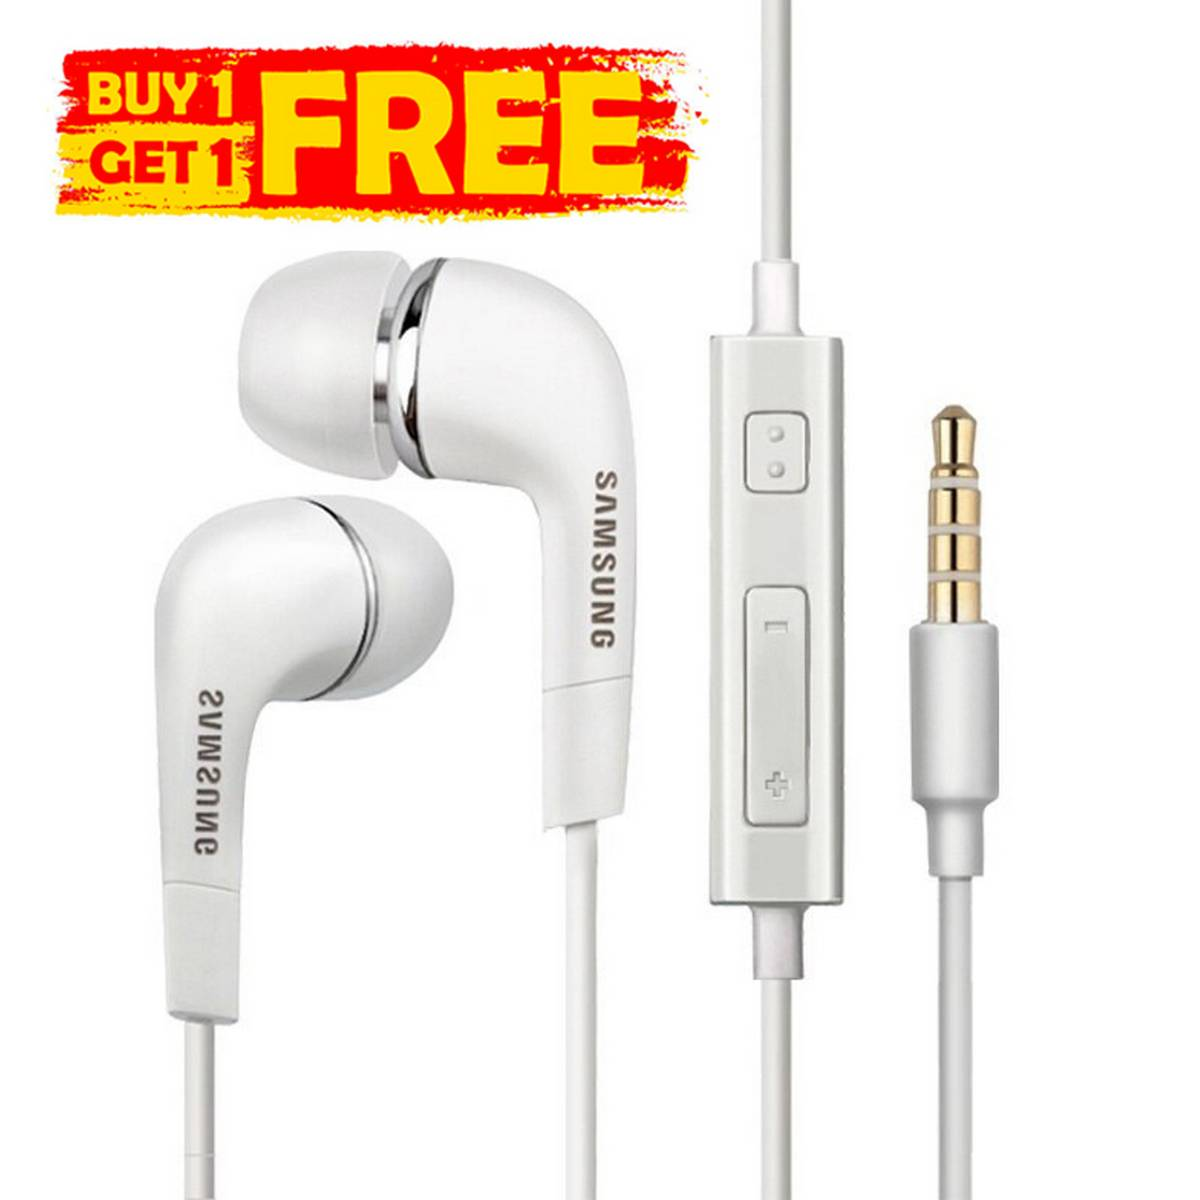 BUY 1 GET 1 FREE High Quality Acoustic Stereo Sound Handsfree In-Ear Handfree / Handsfree / Hand Free / Earphones With Microphone For All Android Mobiles